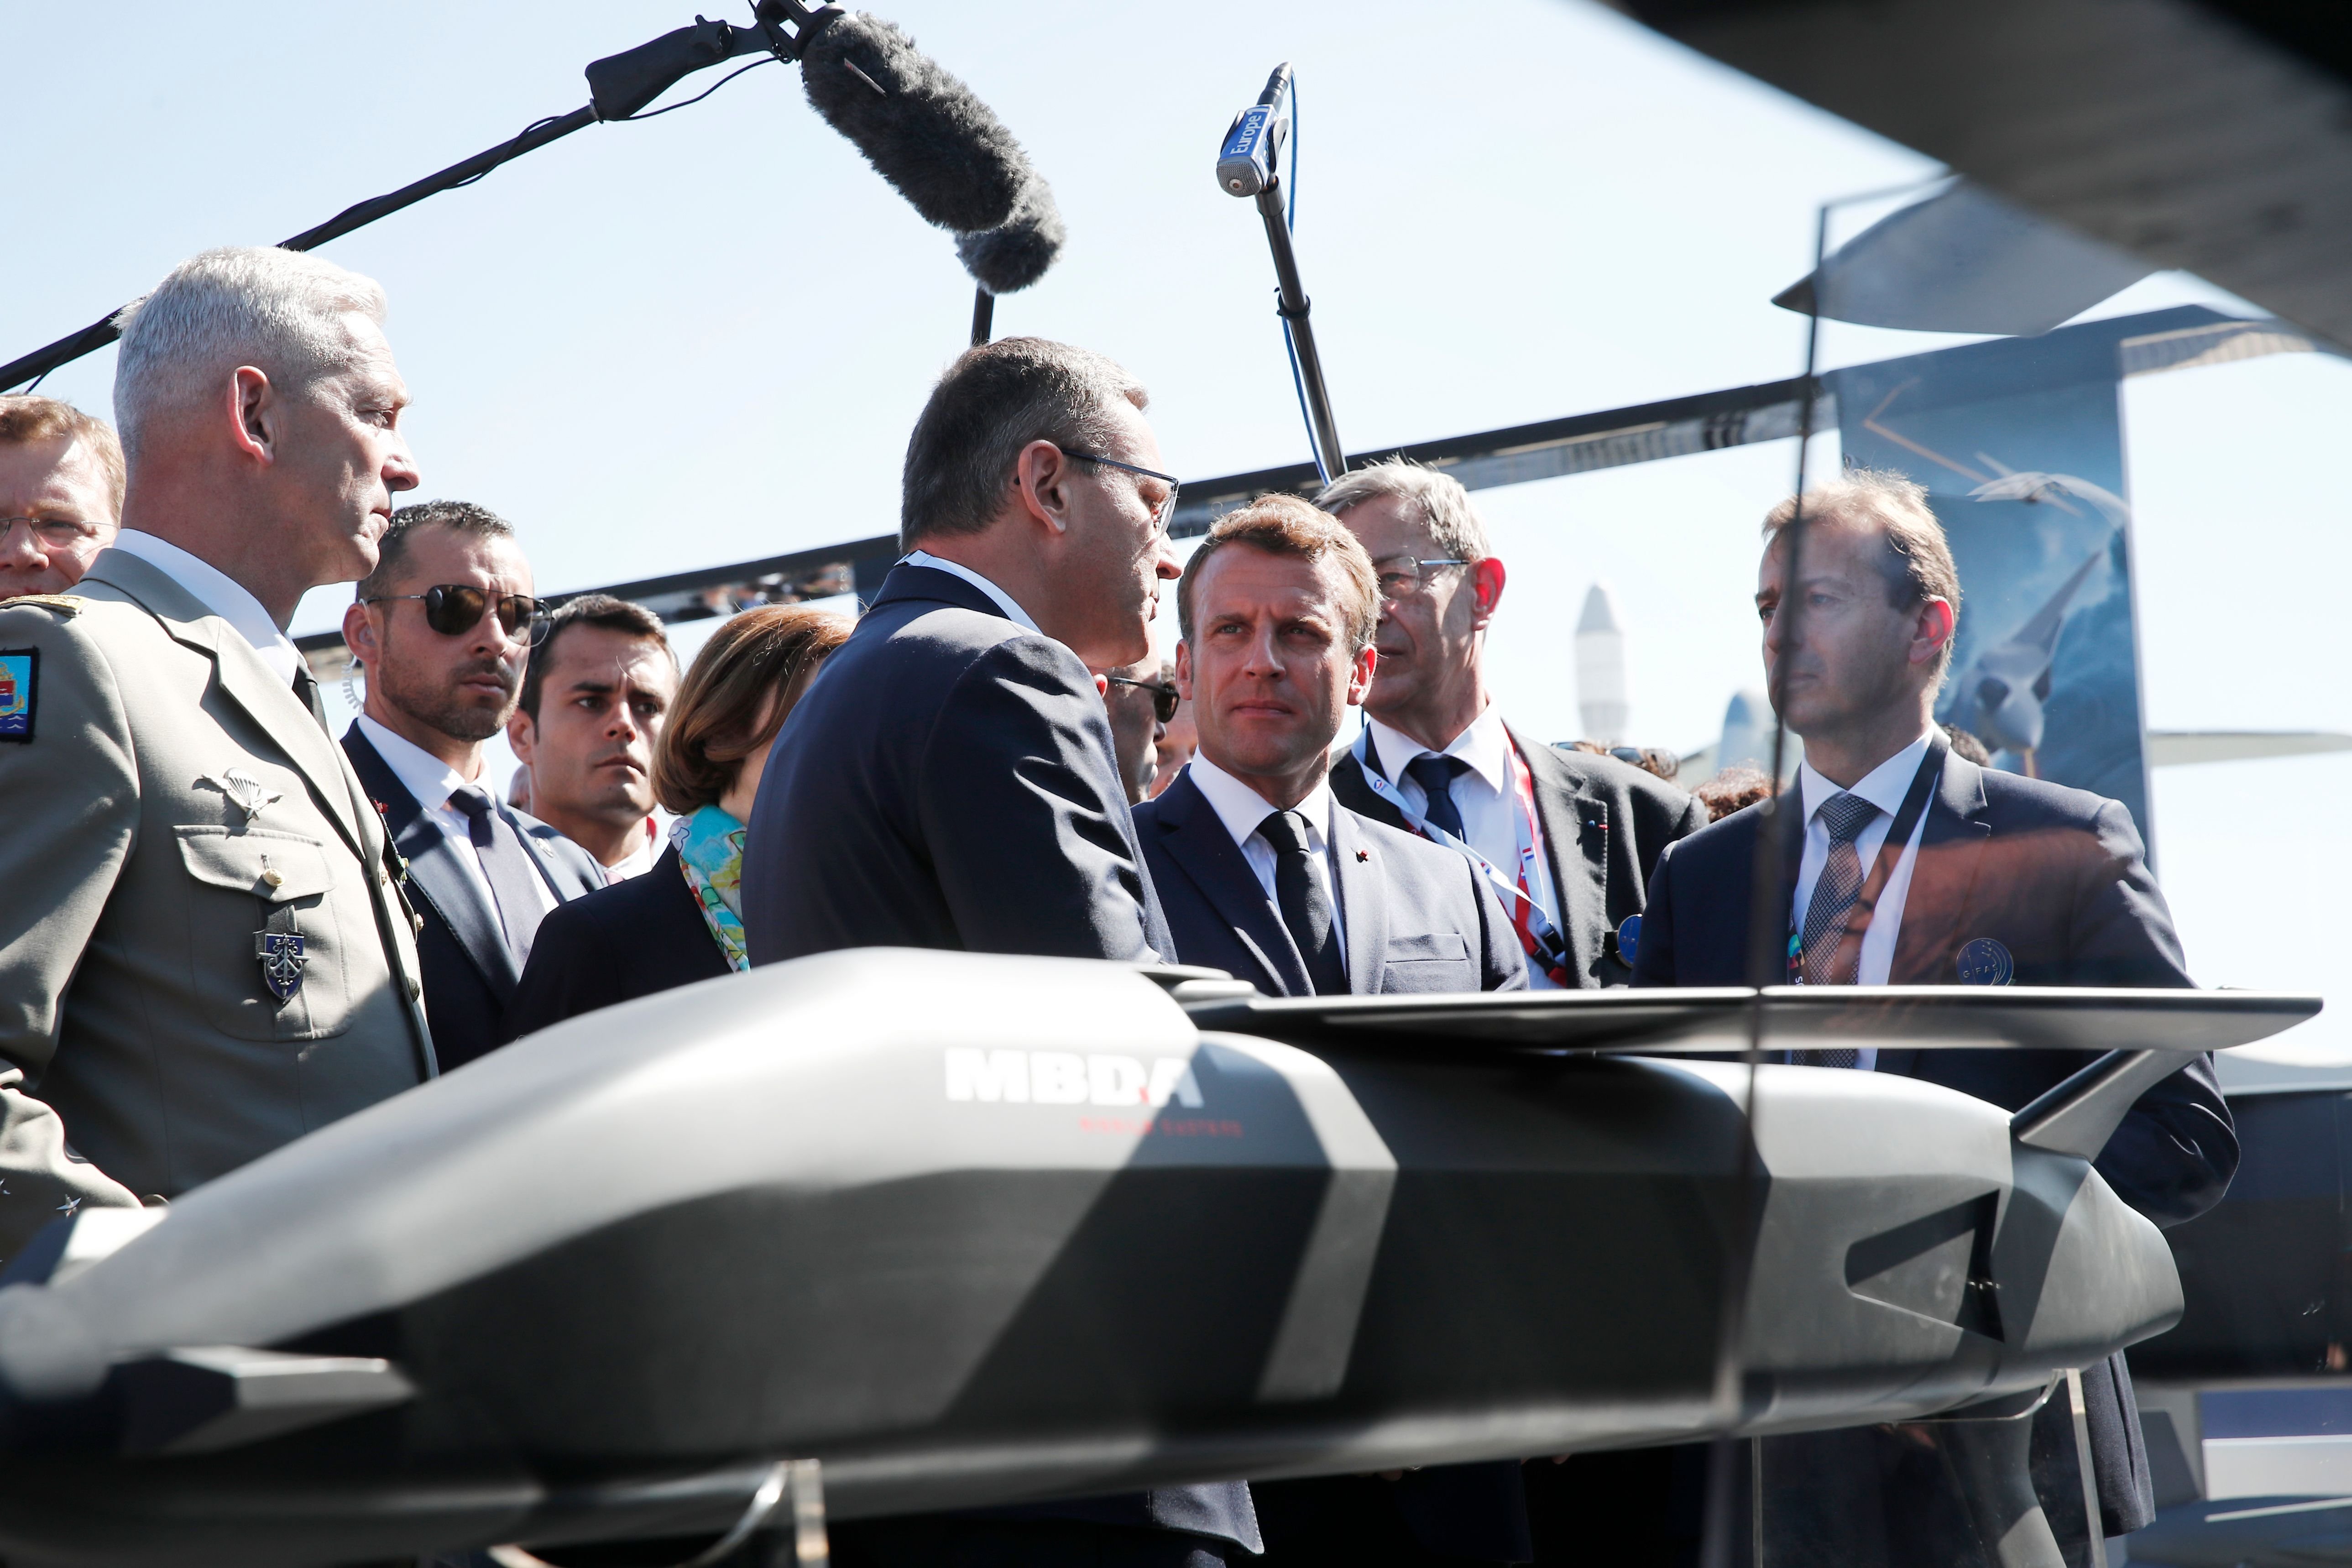 French President Emmanuel Macron (C) talks with Eric Beranger (C, left), chief executive officer of MBDA missile Systems, during a visit at the 53rd International Paris Air Show at Le Bourget Airport near Paris, on June 17, 2019. (Benoit Tessier/AFP/Getty Images)